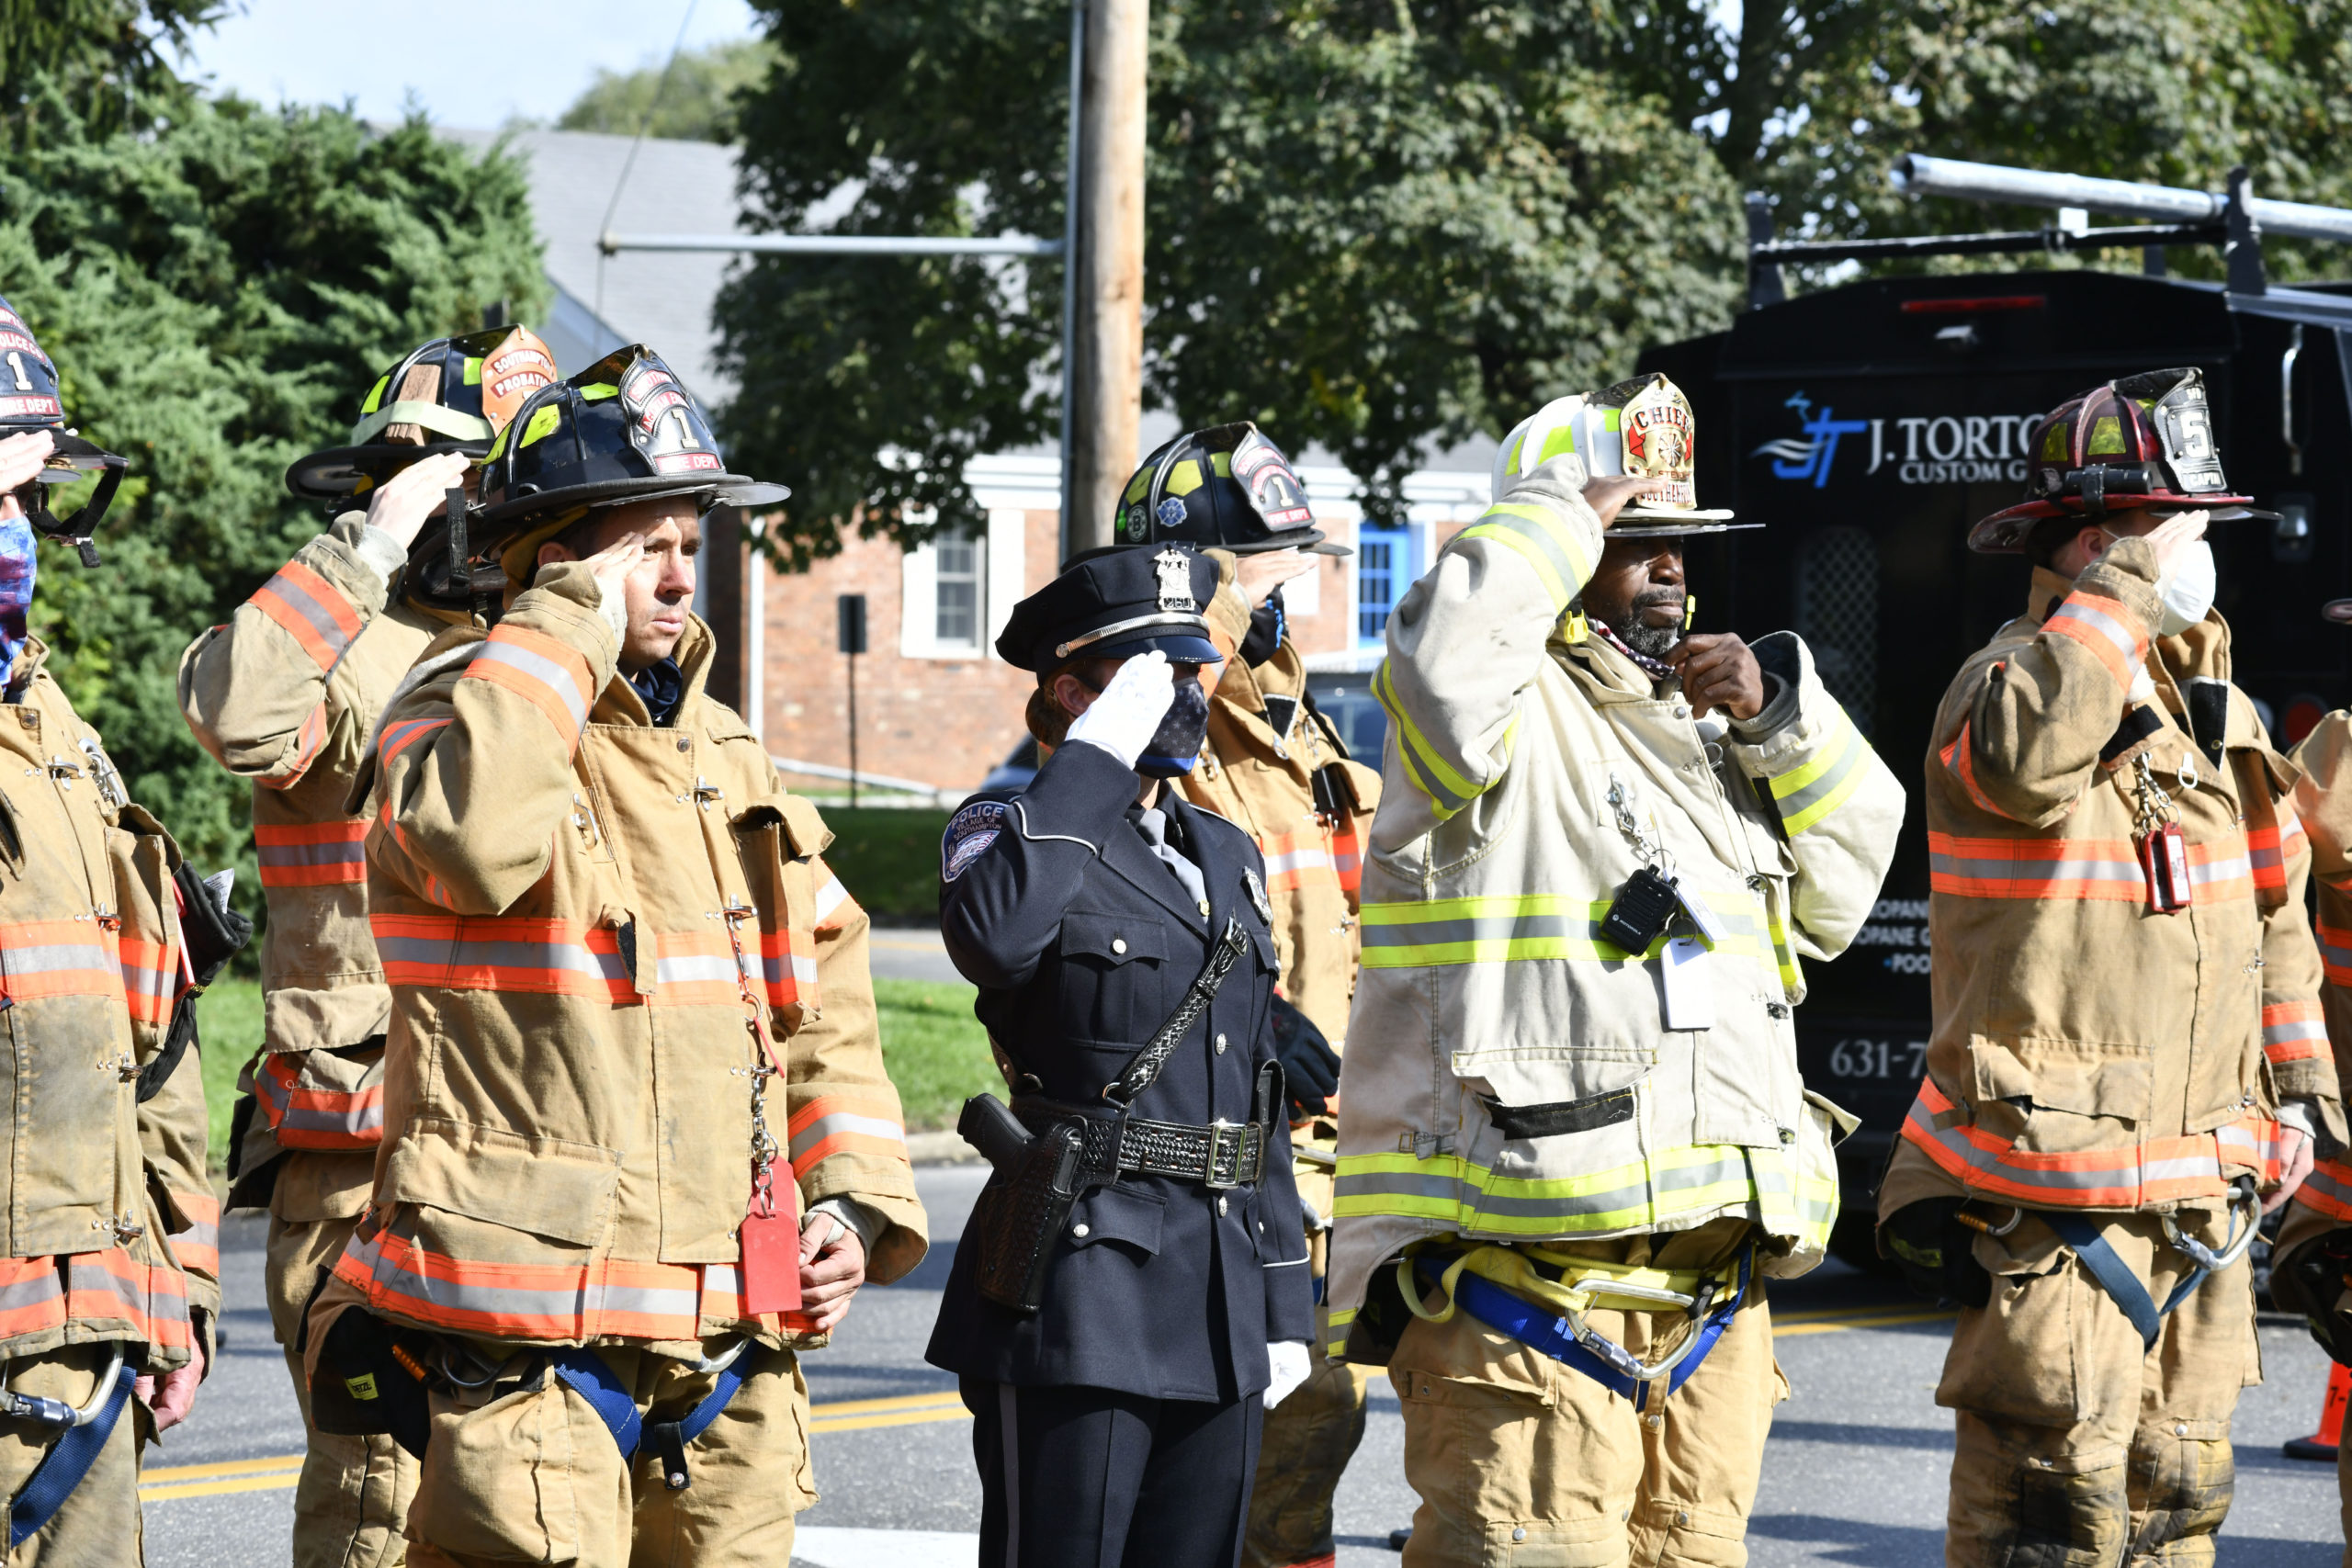 The Southampton Fire Department memorial on Friday morning.